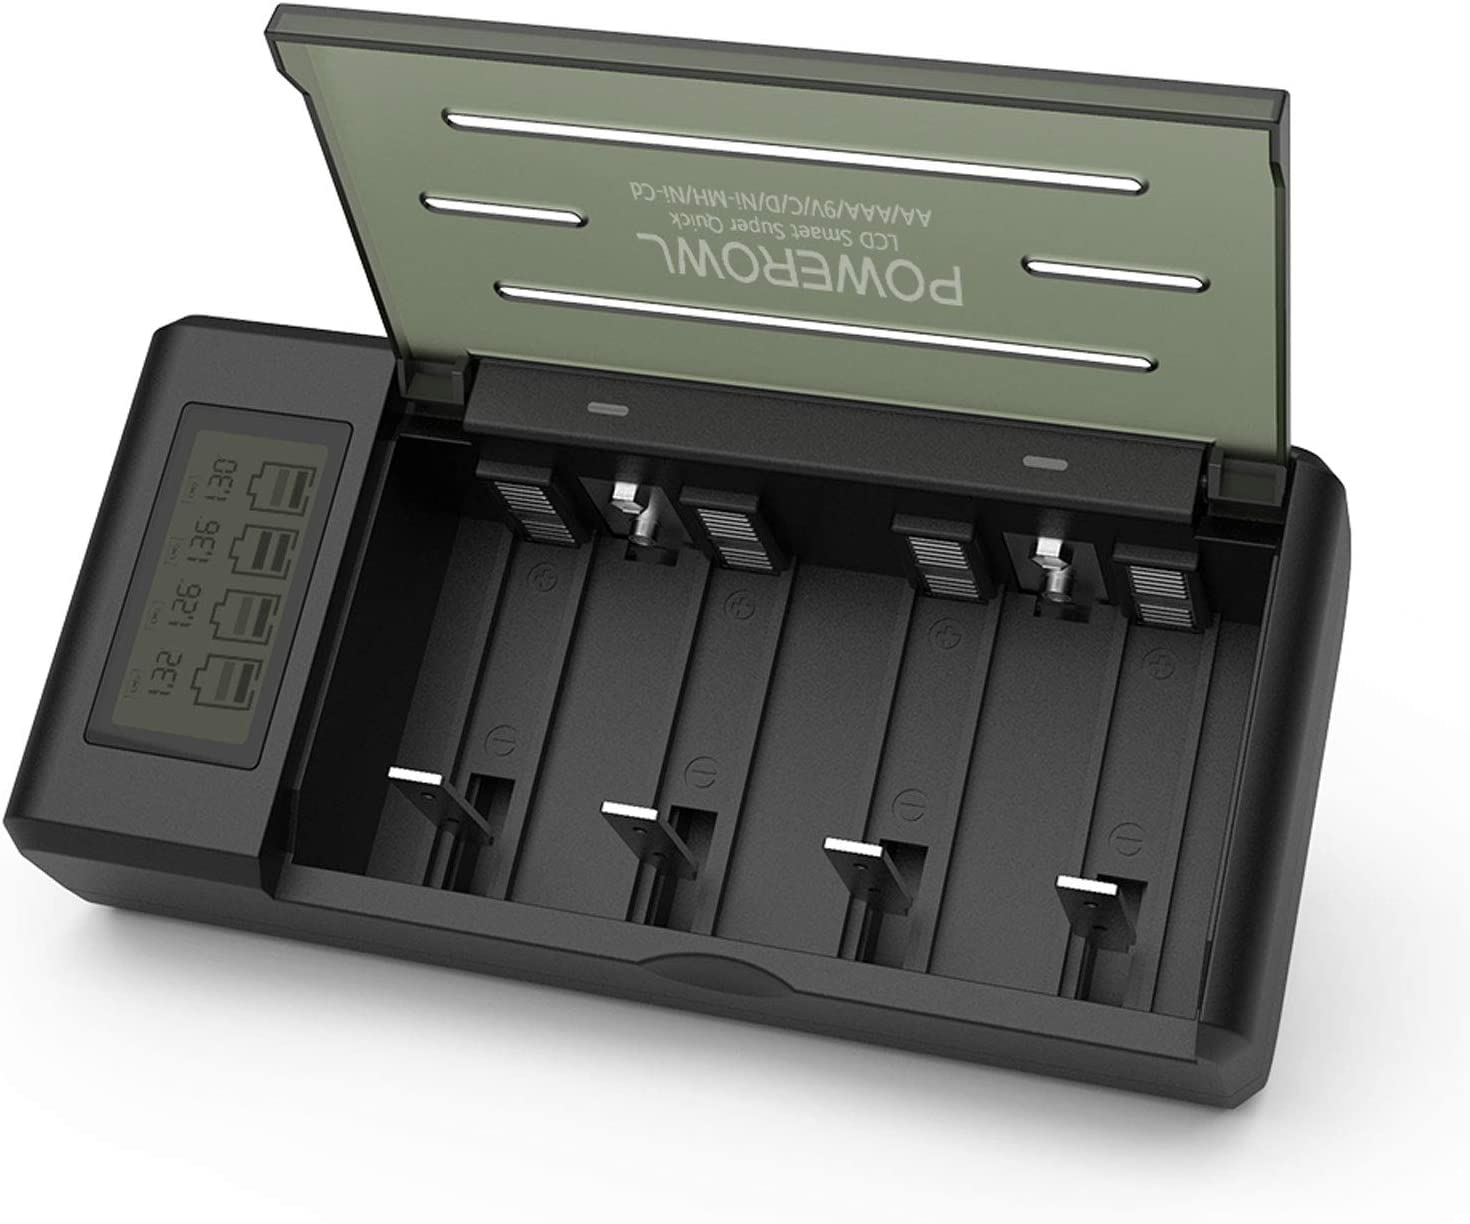 Powerowl Universal Battery Charger with LCD Large Screen (Recharge Pro, 3 Data Visualizations), for AA, AAA, C, D, 9V Ni-MH Ni-CD Rechargeable Batteries